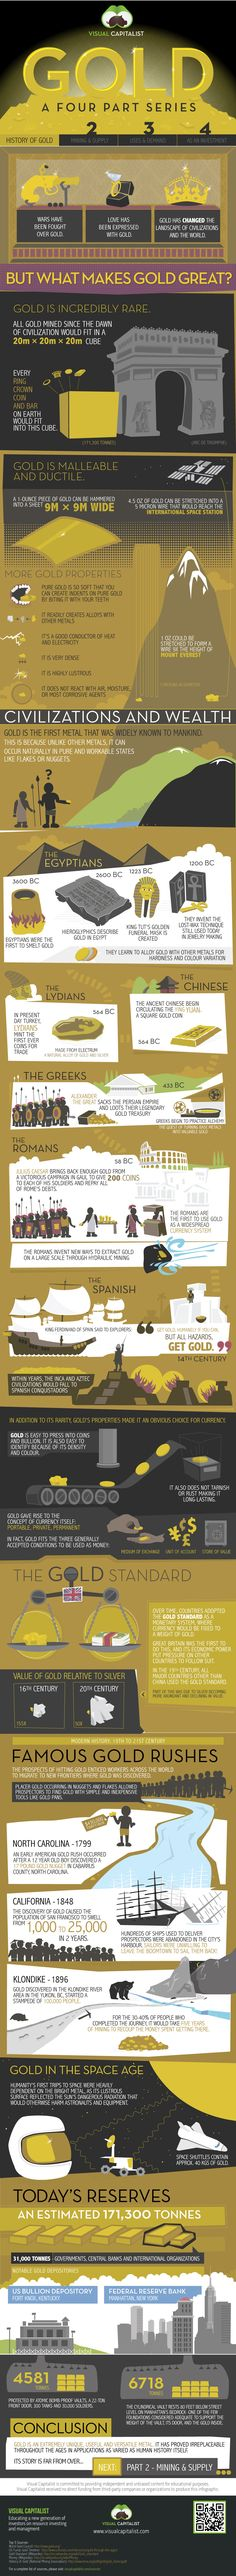 The History Of #Gold.